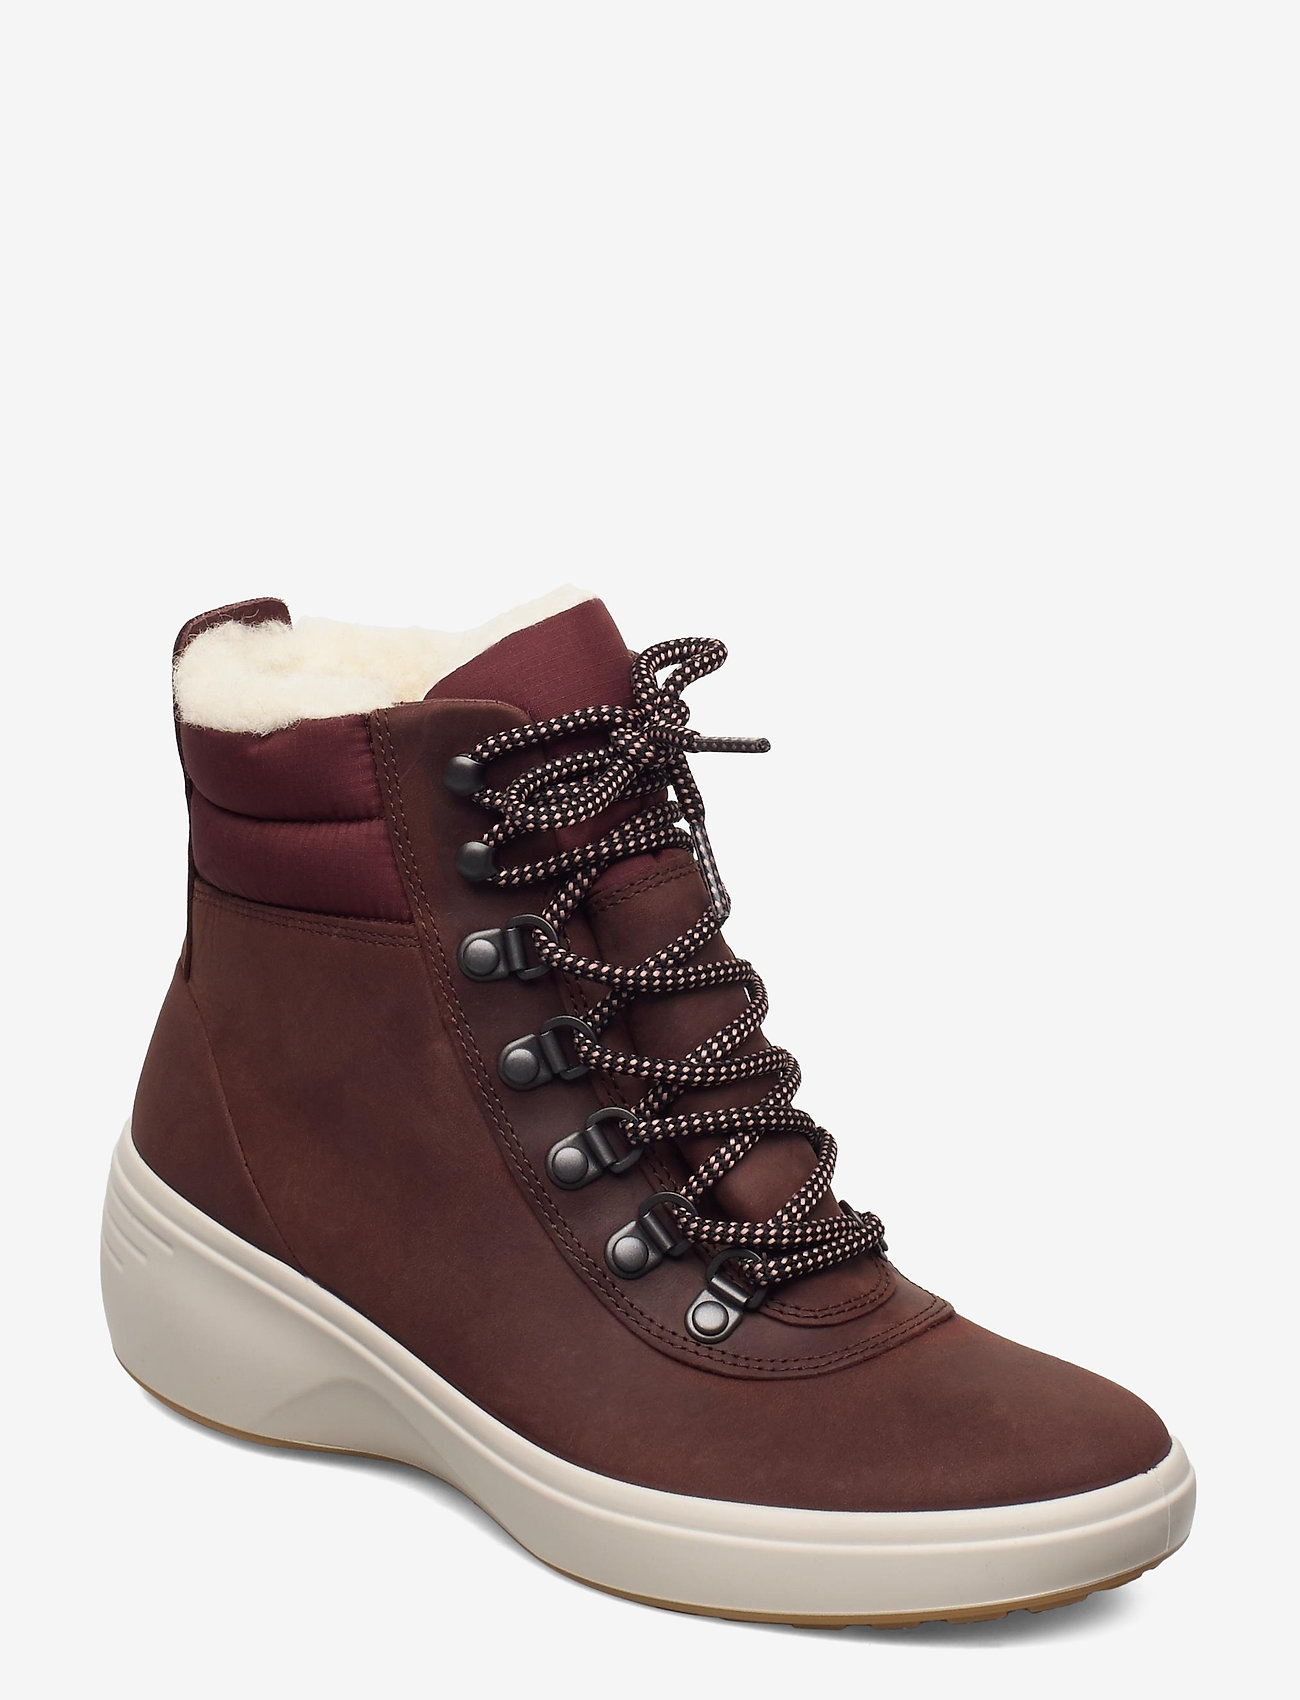 ECCO - SOFT 7 WEDGE TRED - flat ankle boots - chocolate/chocolate - 0